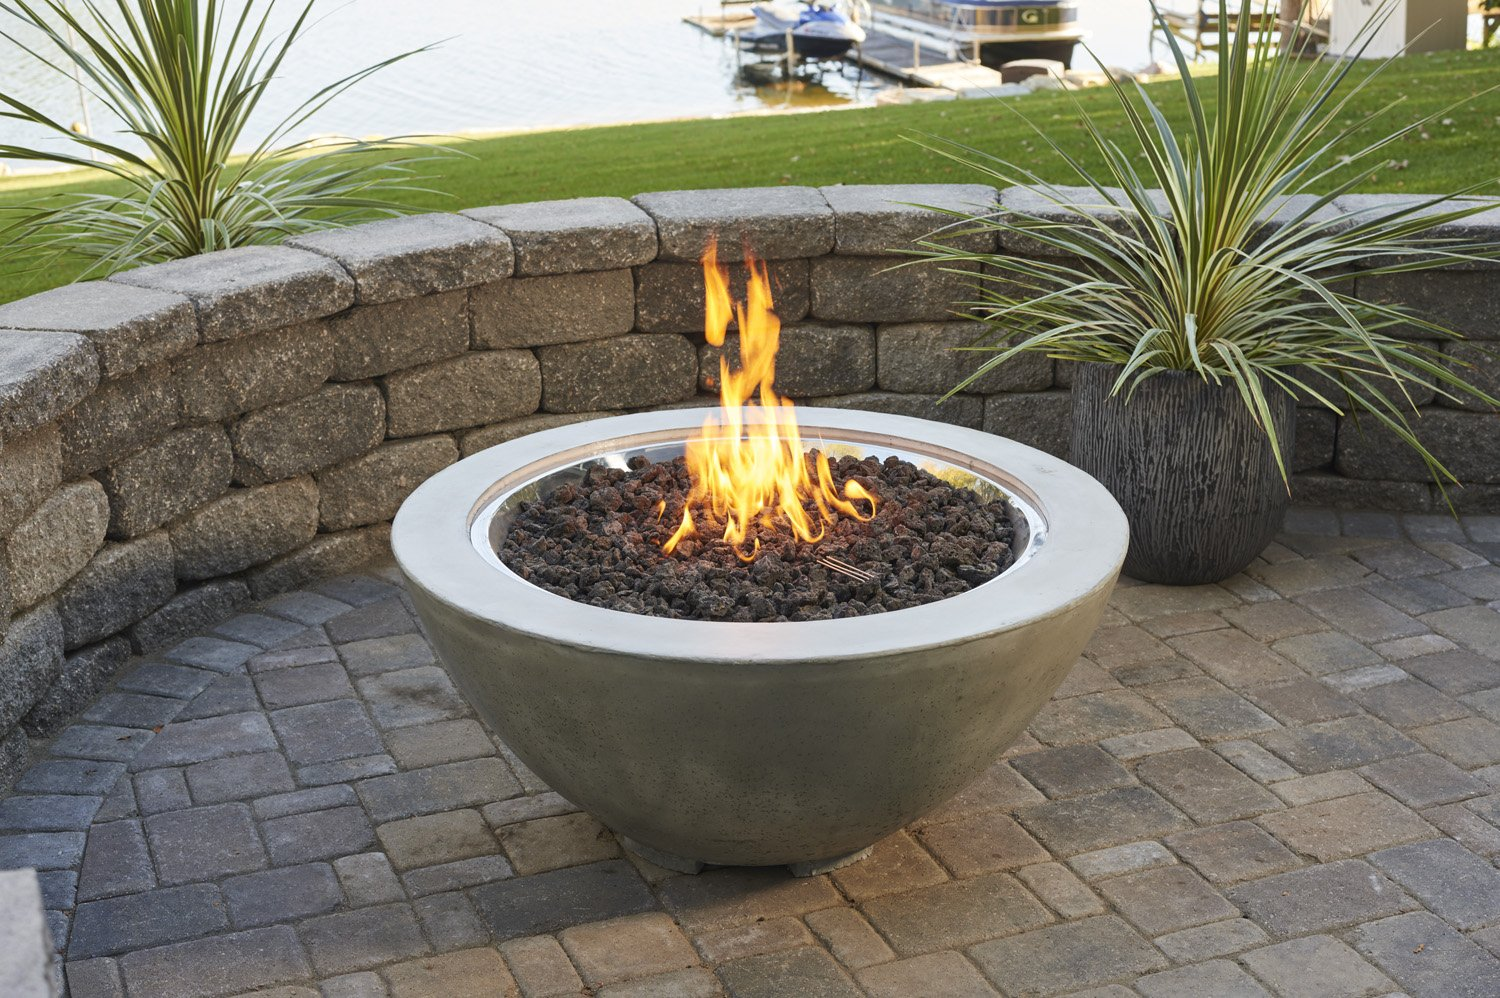 Fire table, firepit, firetable, fireplace, fire, Outdoor, outdoor room, patio, backyard